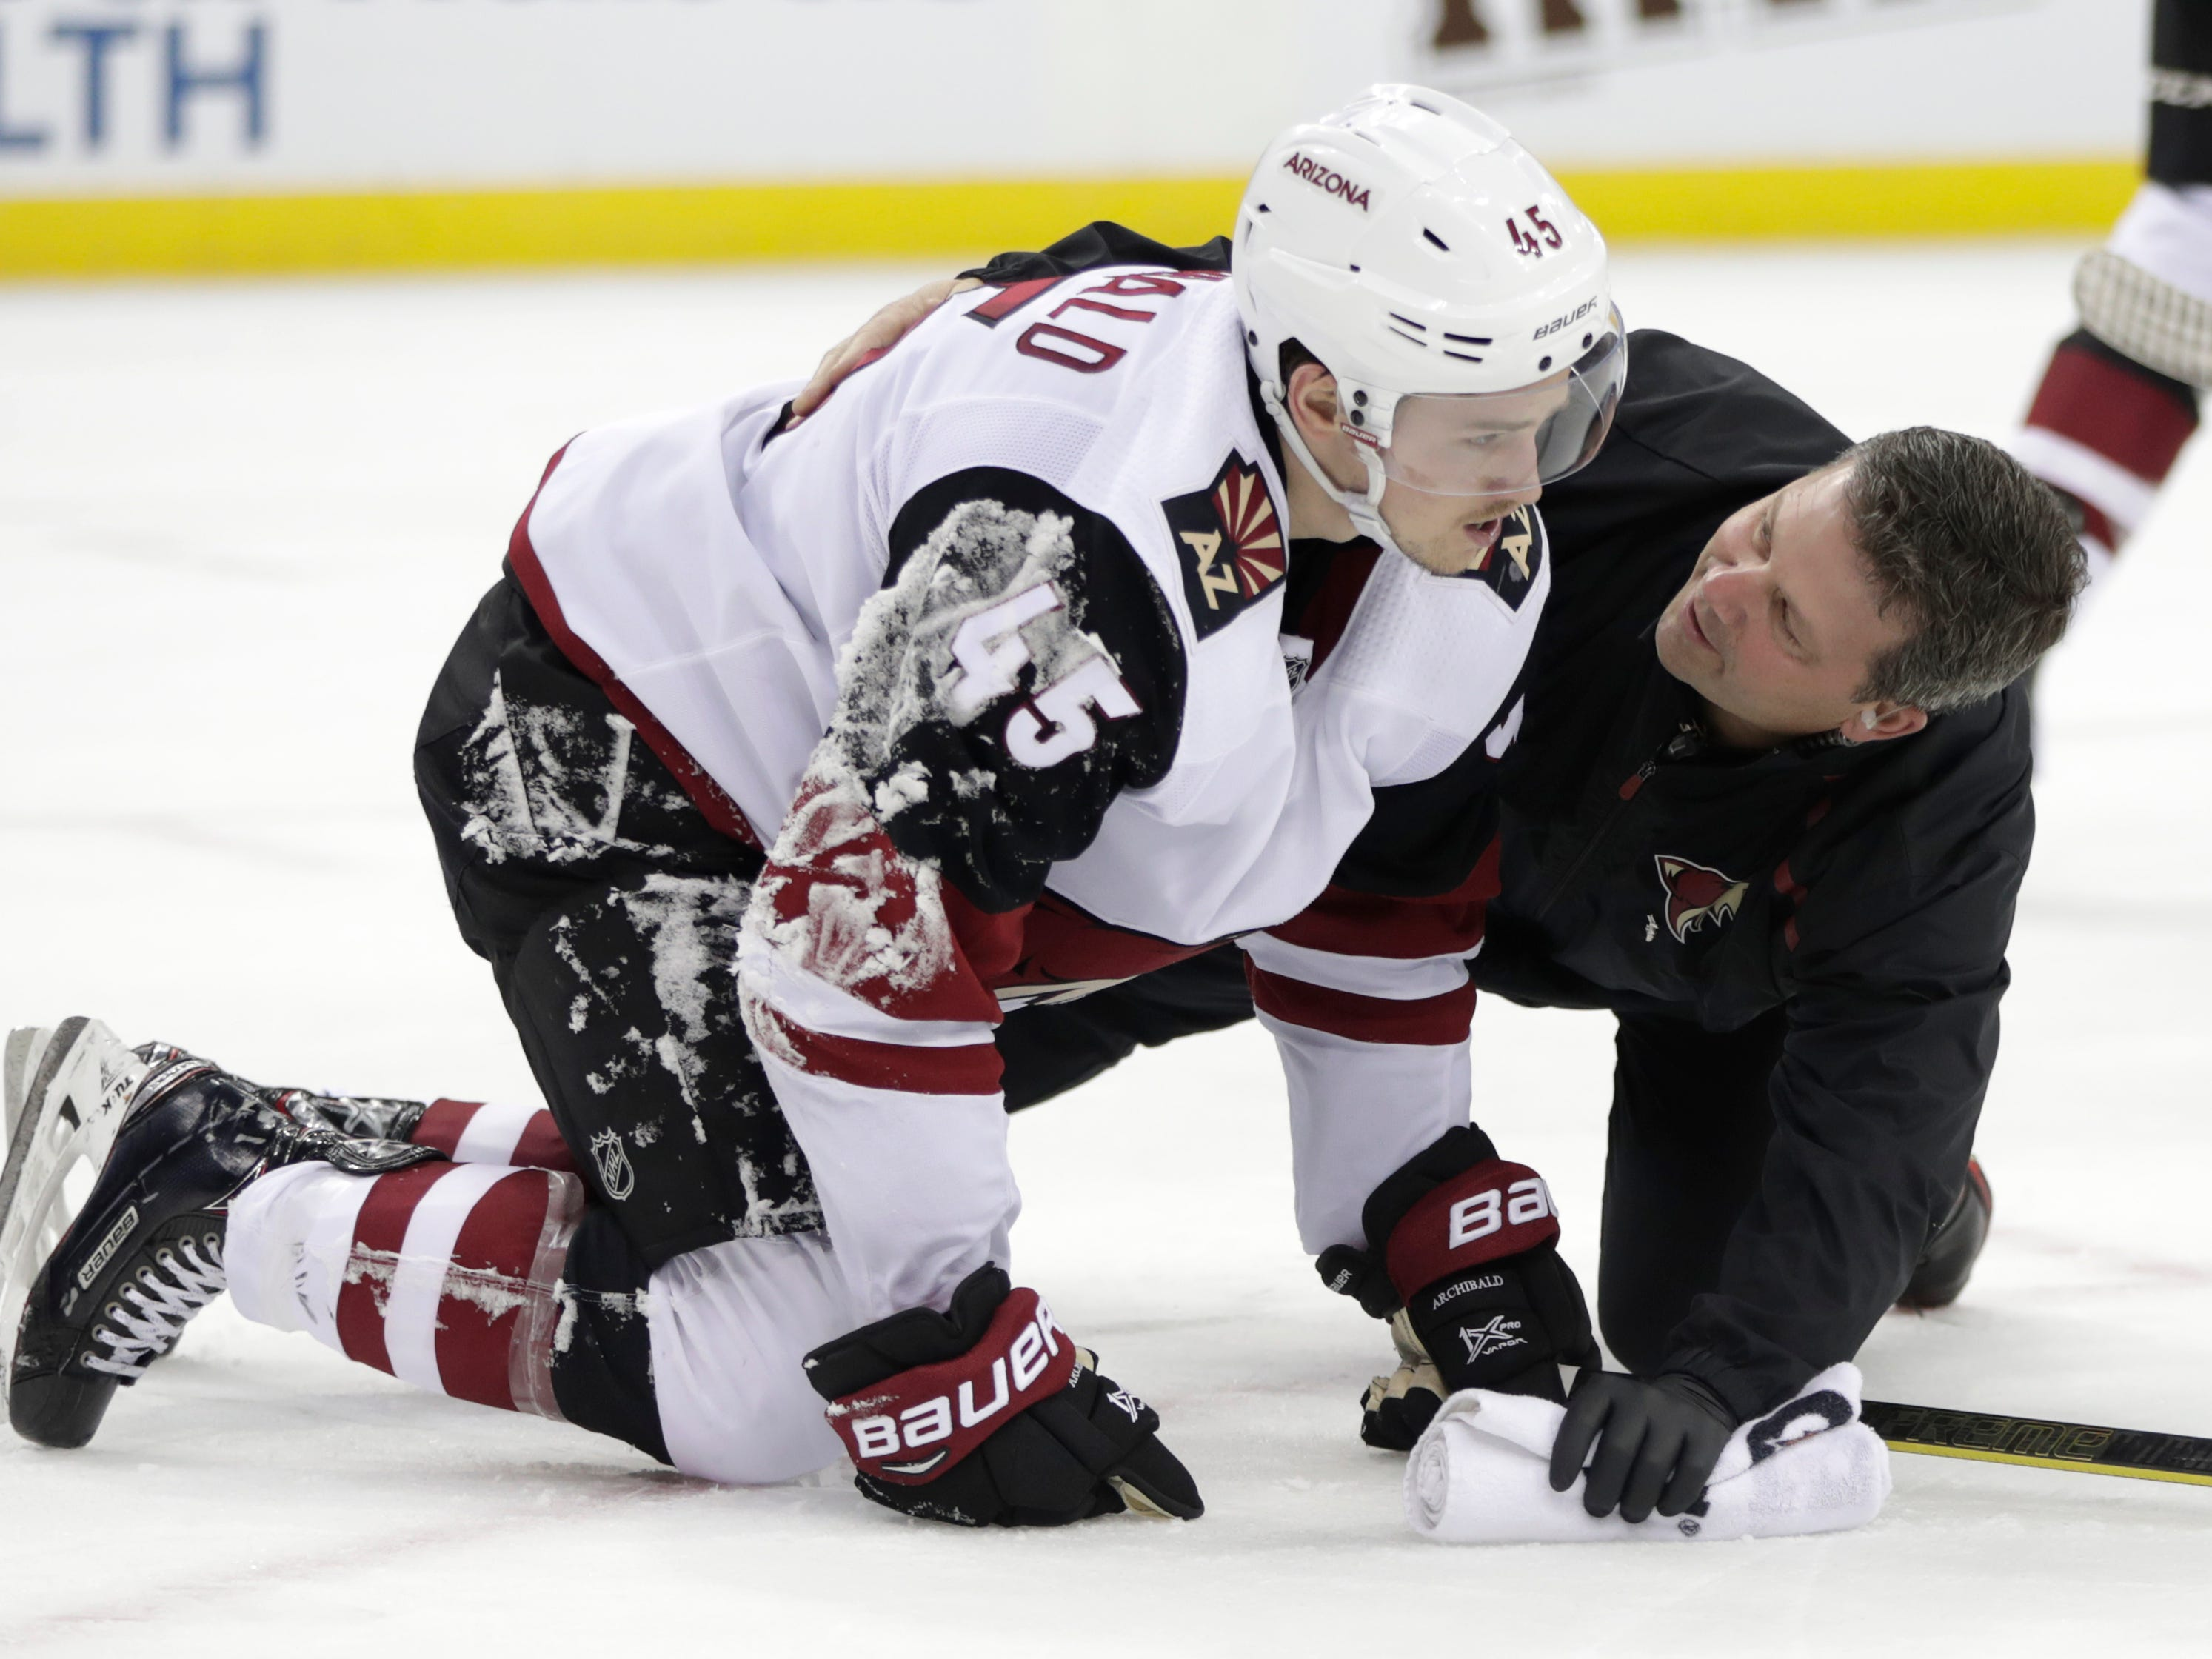 A trainer talks to Arizona Coyotes right wing Josh Archibald (45) during the second period of an NHL hockey game against the New Jersey Devils, Saturday, March 23, 2019, in Newark, N.J.